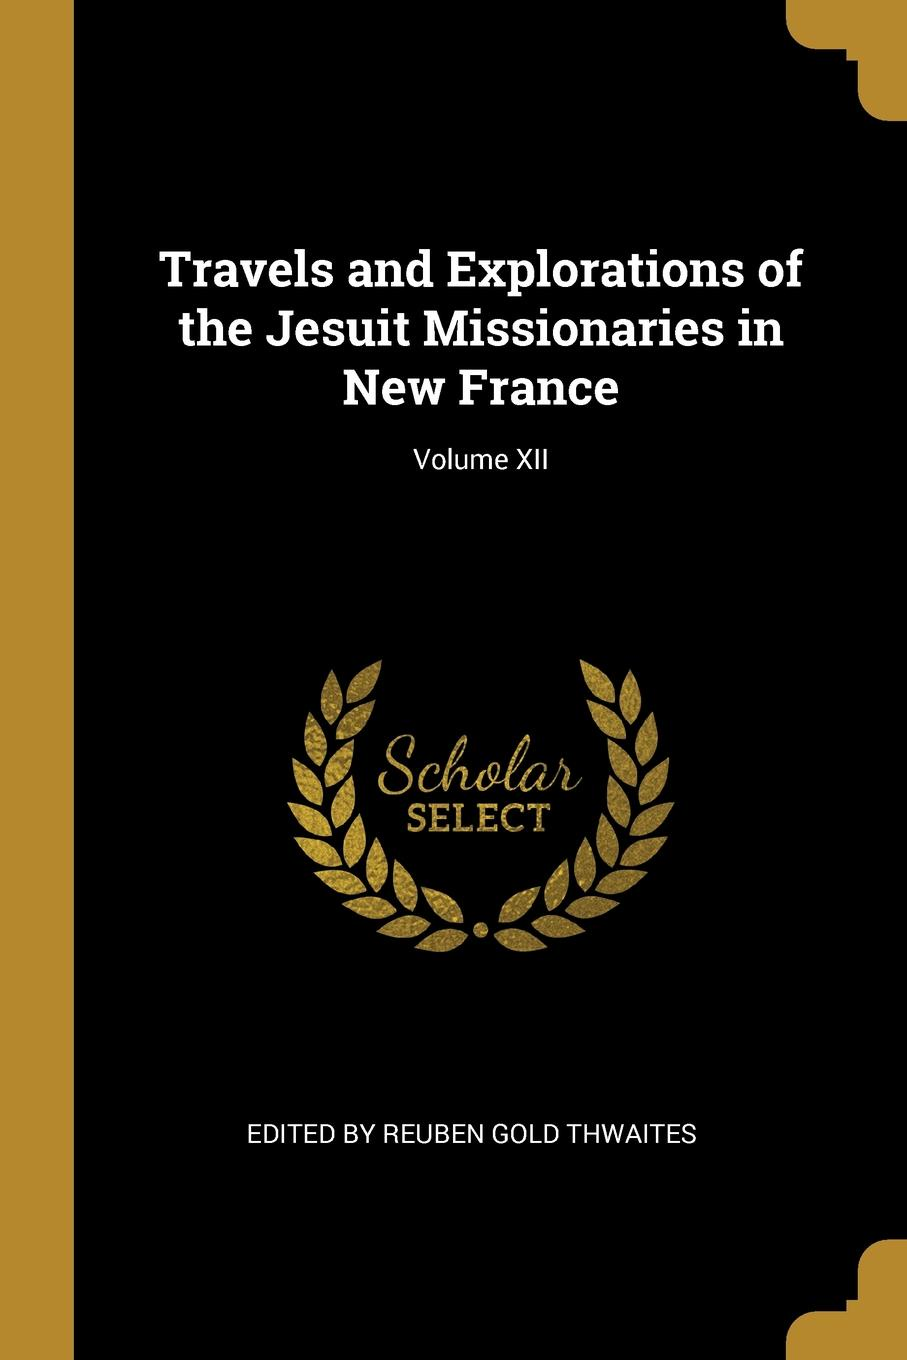 Edited by Reuben Gold Thwaites Travels and Explorations of the Jesuit Missionaries in New France; Volume XII